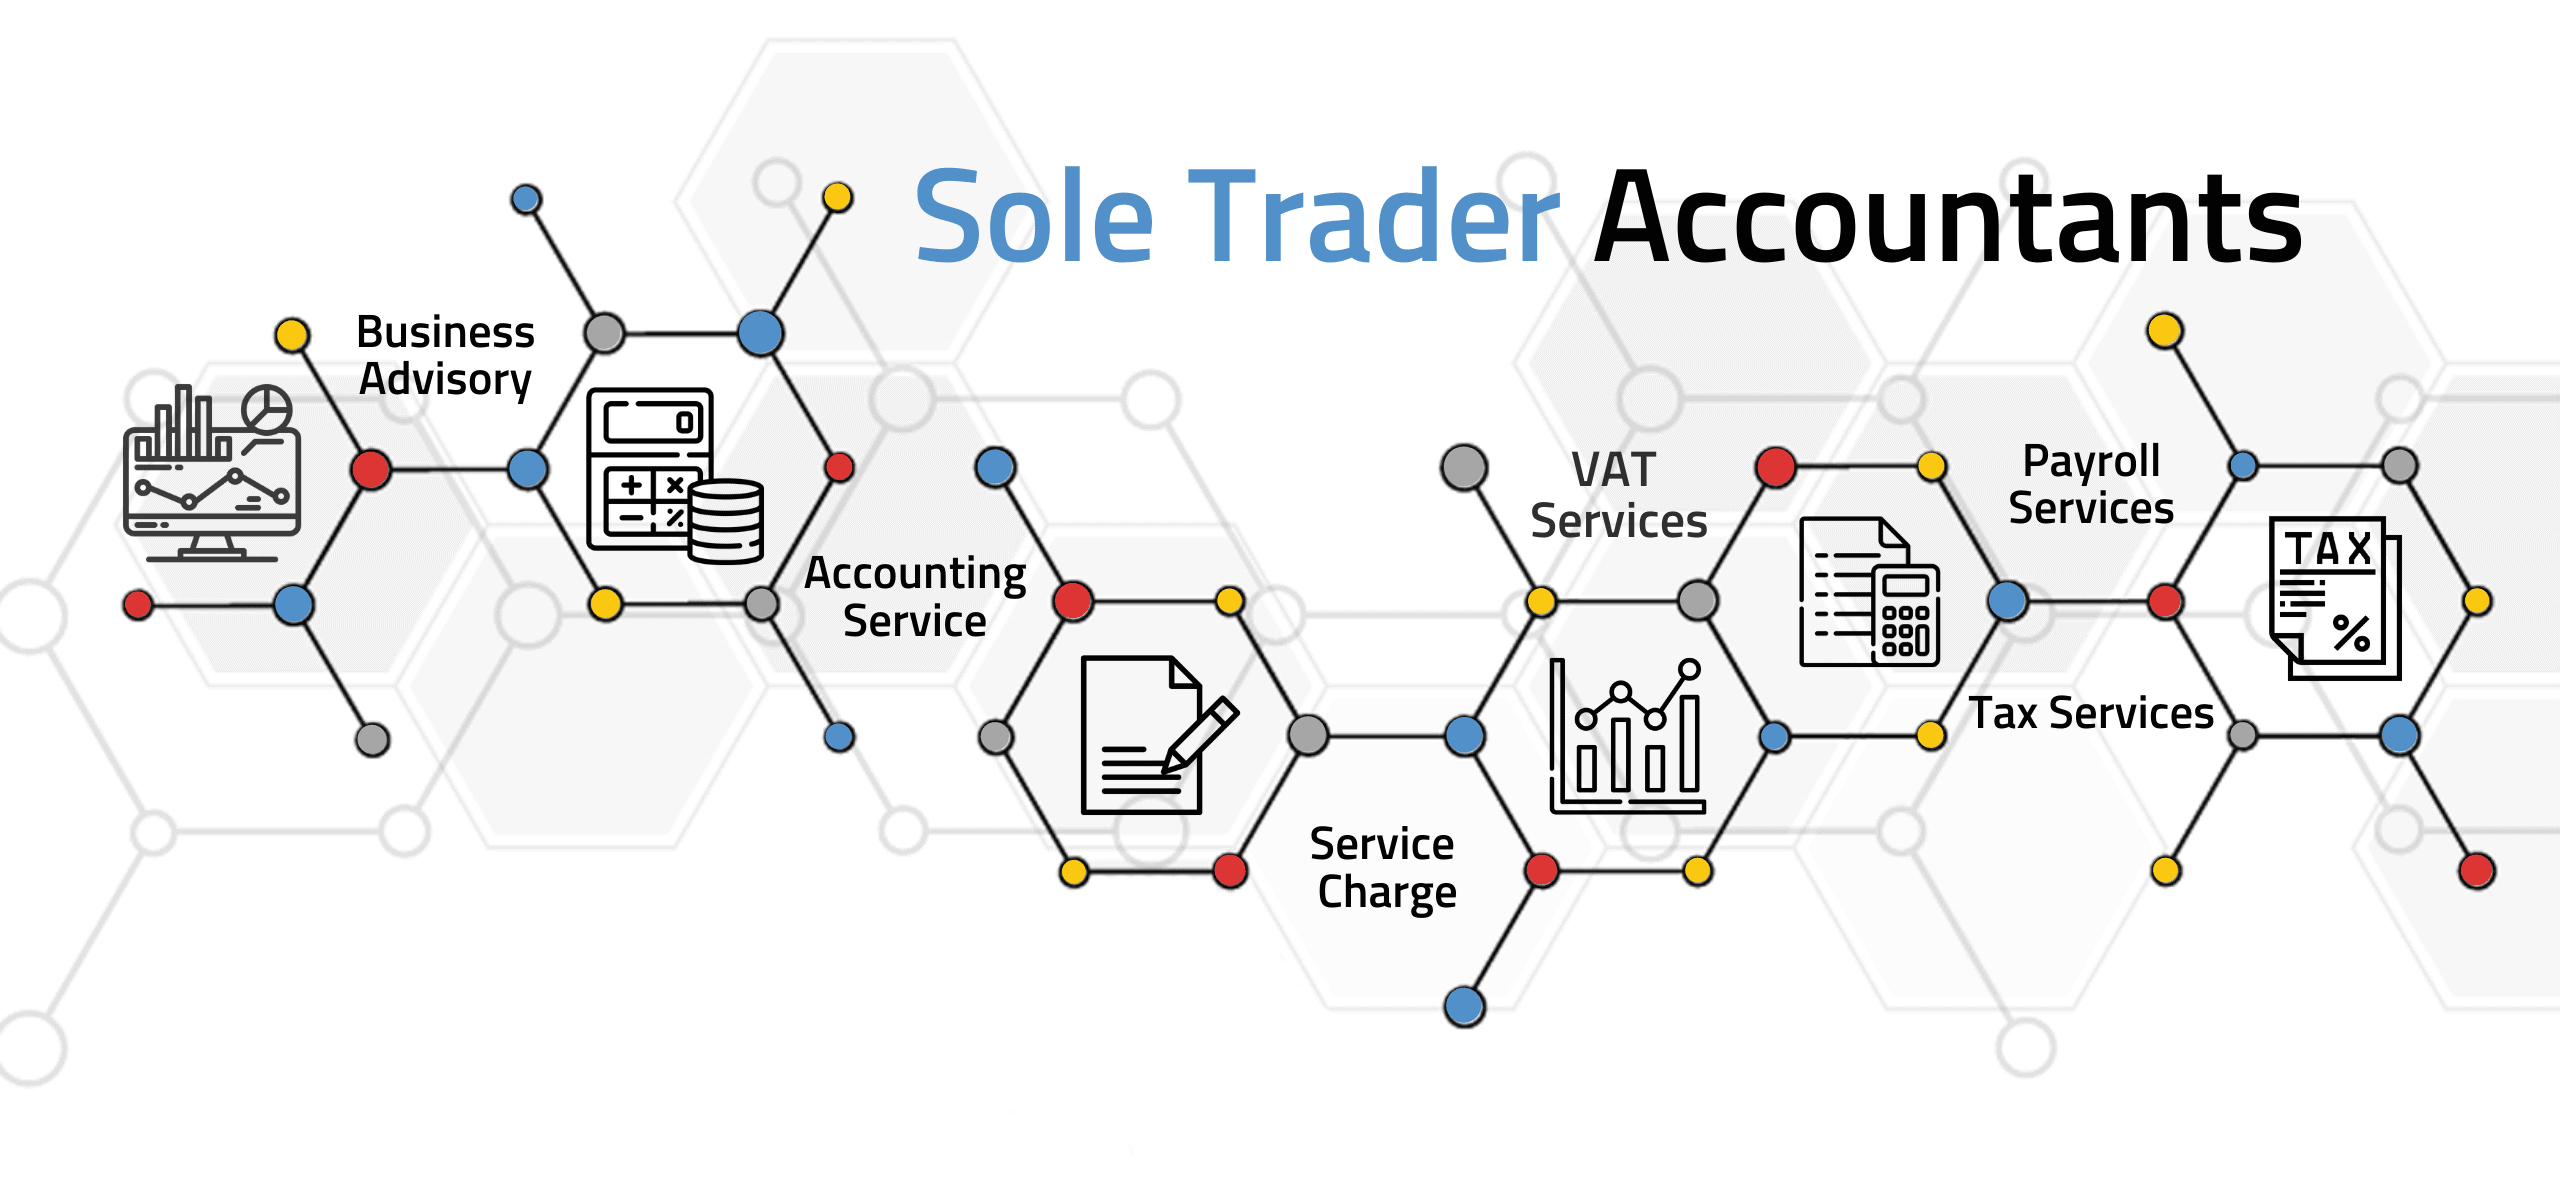 Sole Trader Accountants